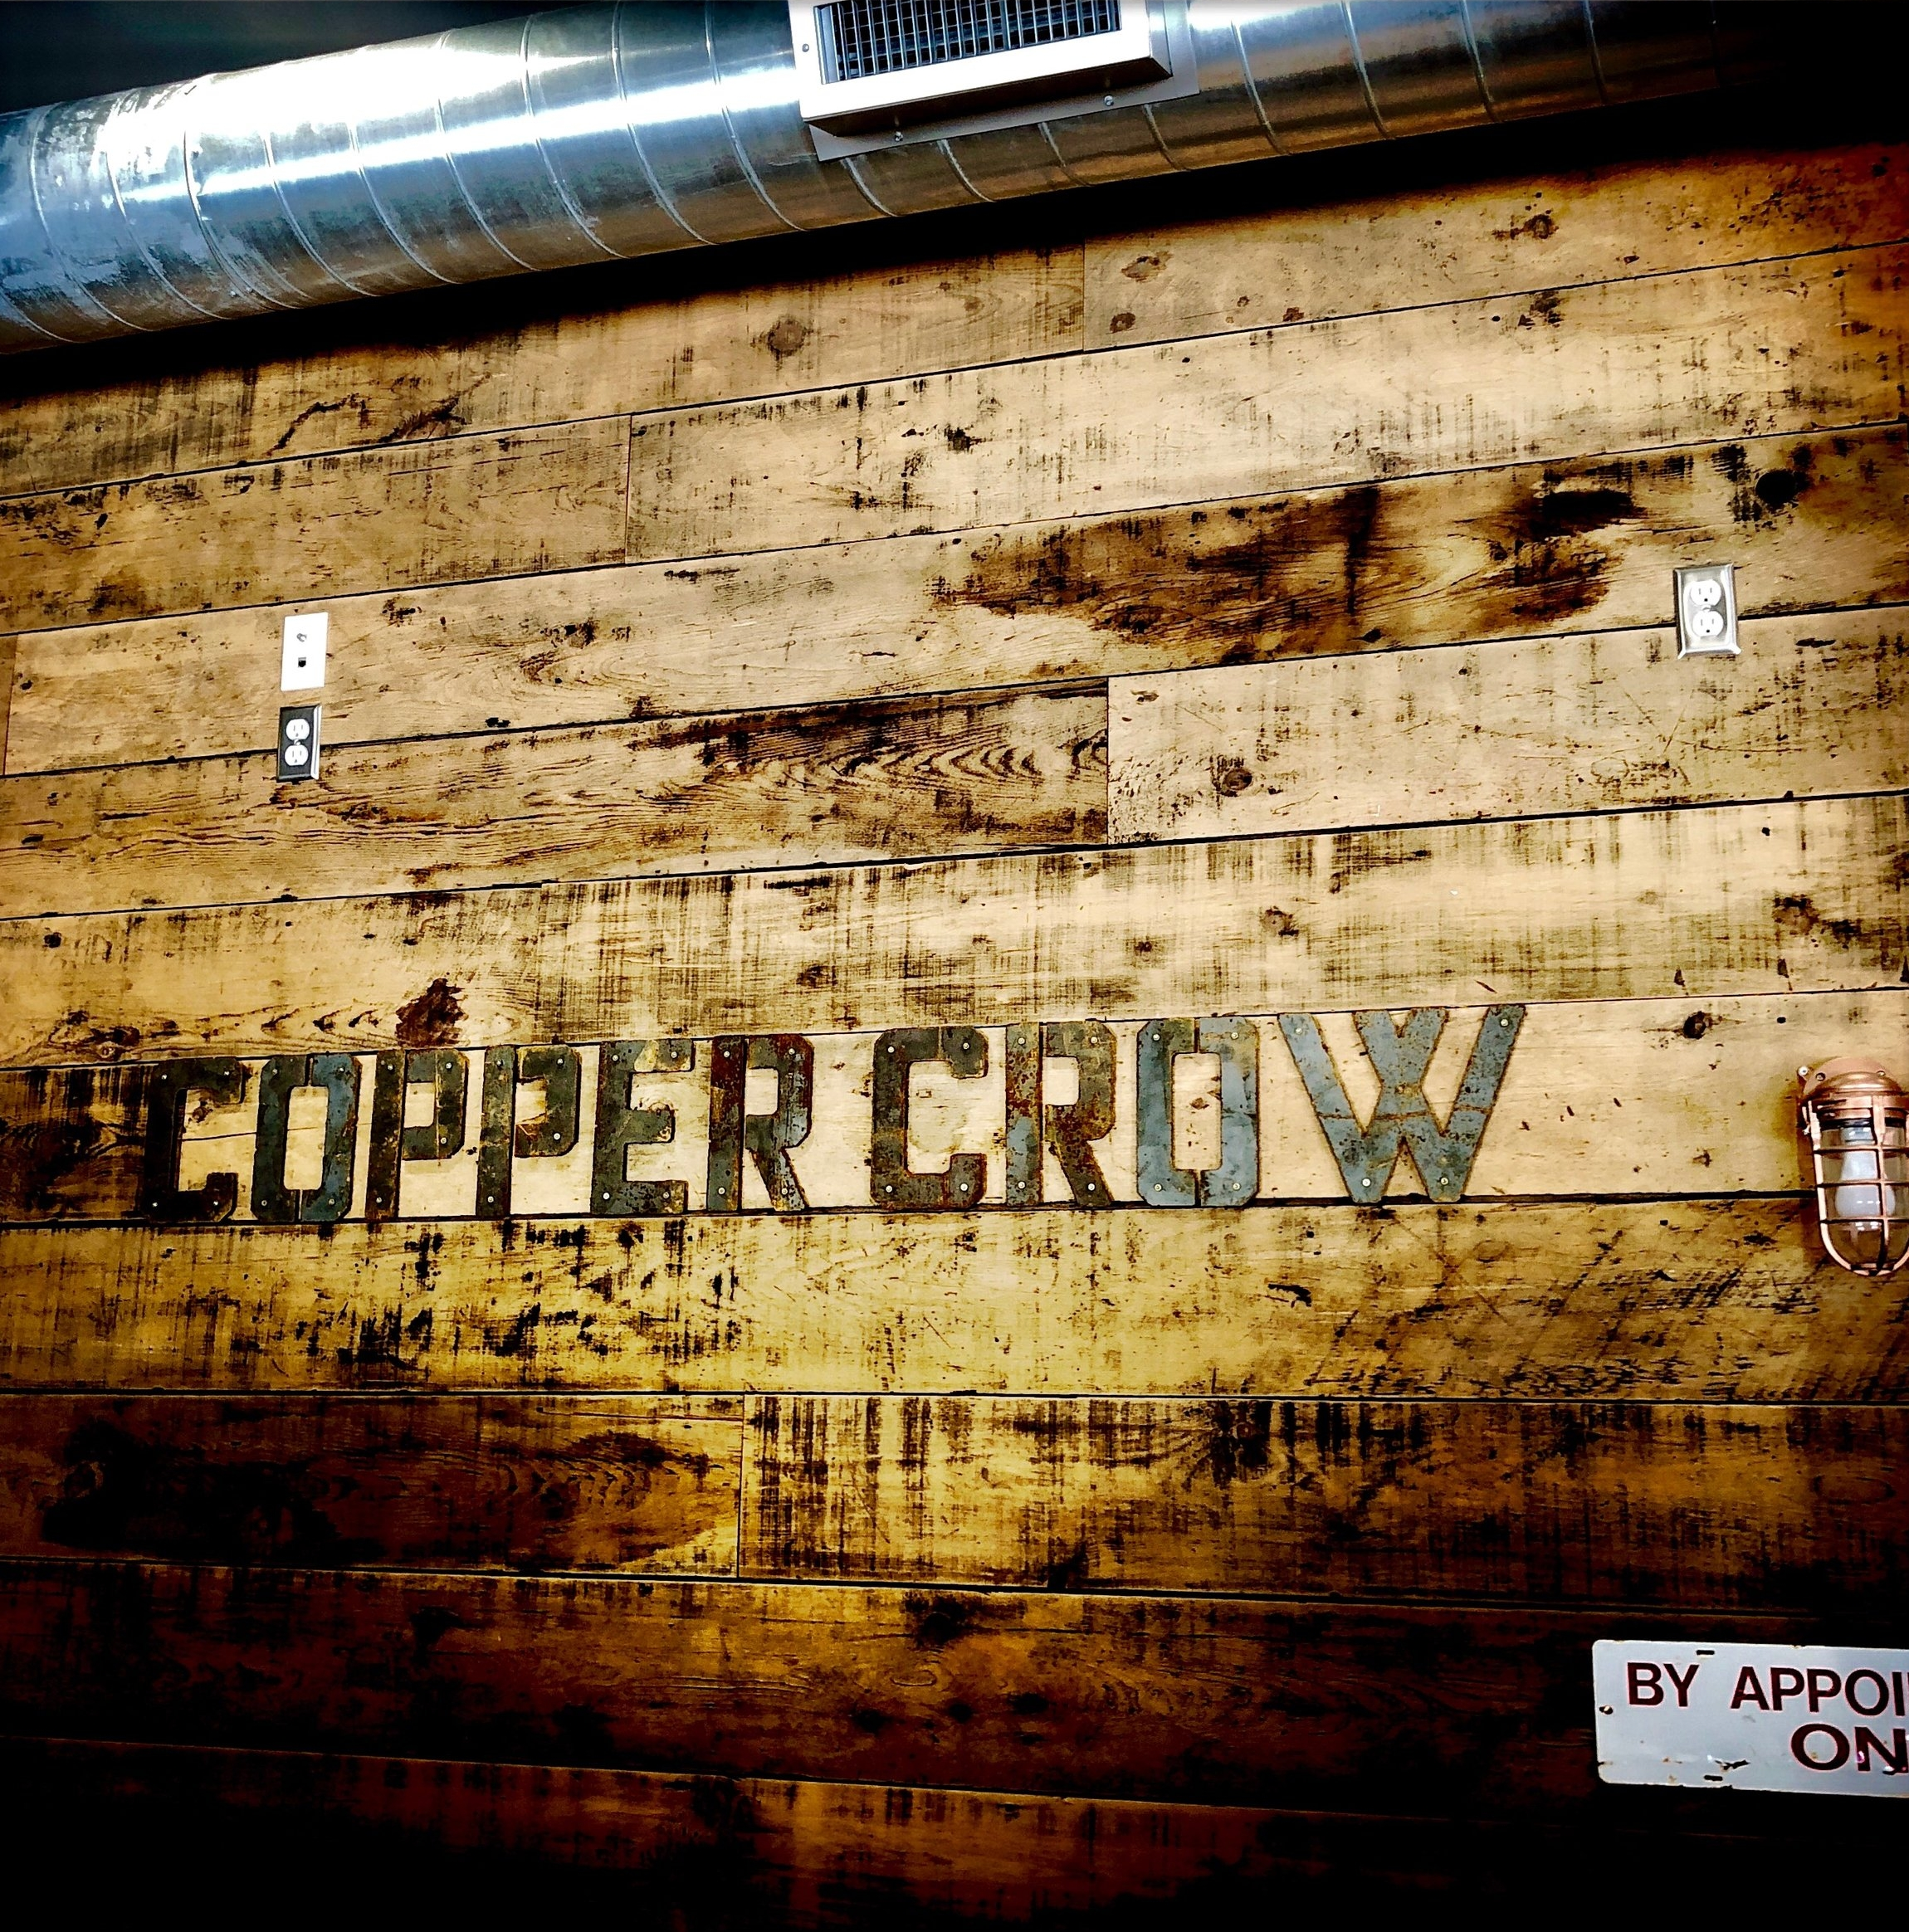 THE COPPER CROW DISTILLERY - BAYFIELD, WISCONSINUsing fresh, regional ingredients, COPPER CROW DISTILLERY creates small distinctive batches inspired by the spirit and purity of Lake Superior. Stop by for a pour as pure as the place!